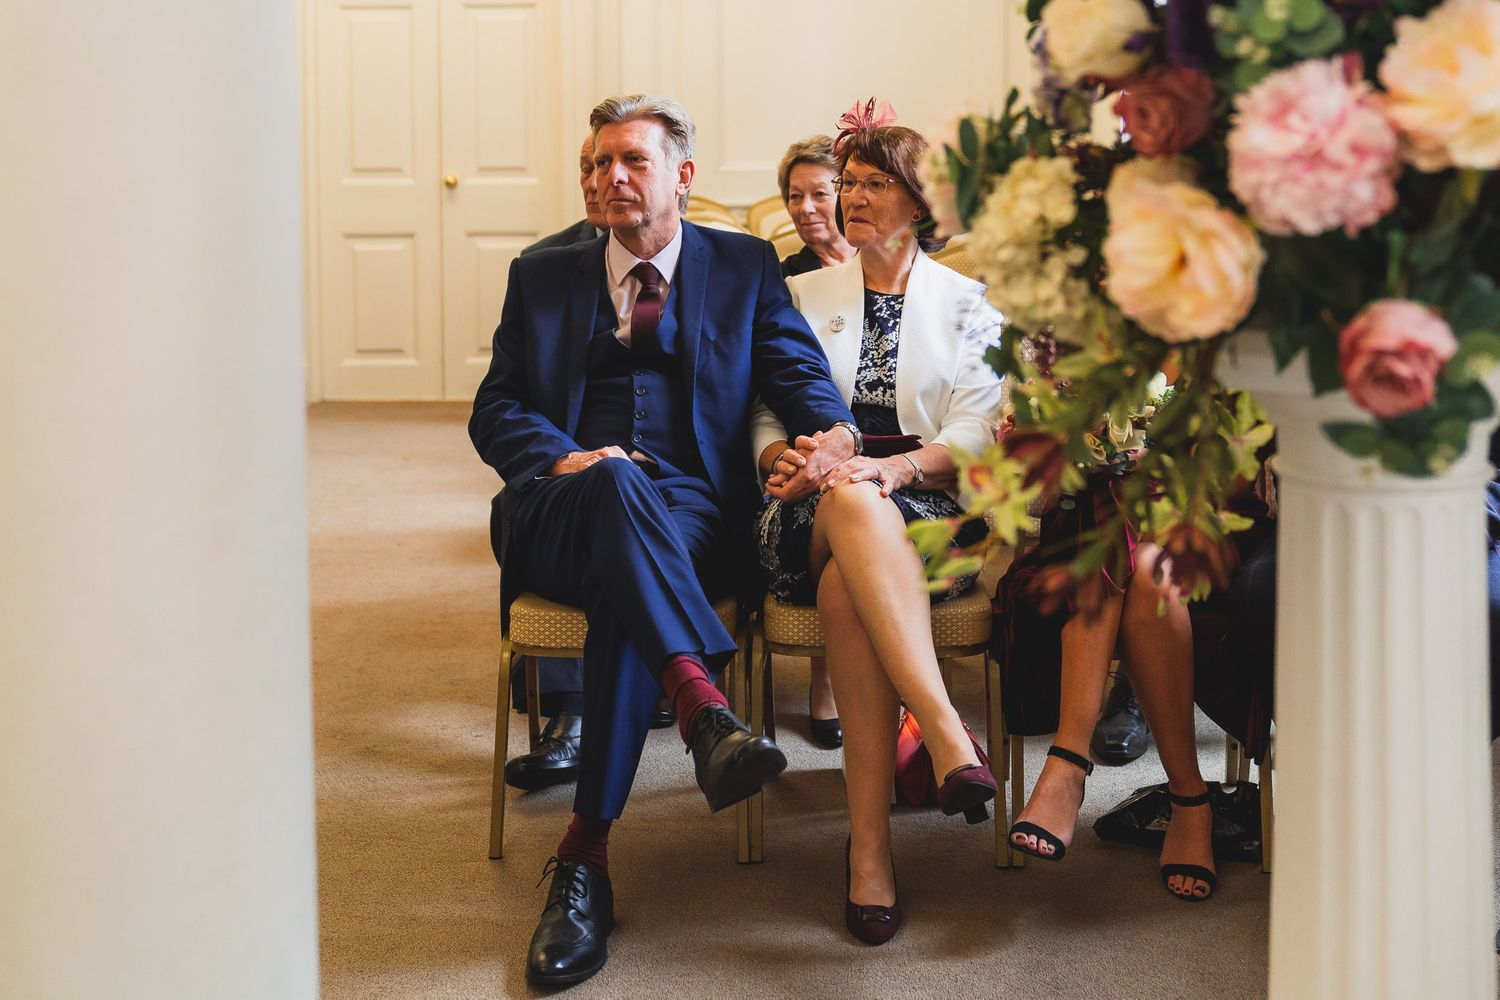 Bride's mother and father look on as their daughter gets married at Salisbury Registry Office.